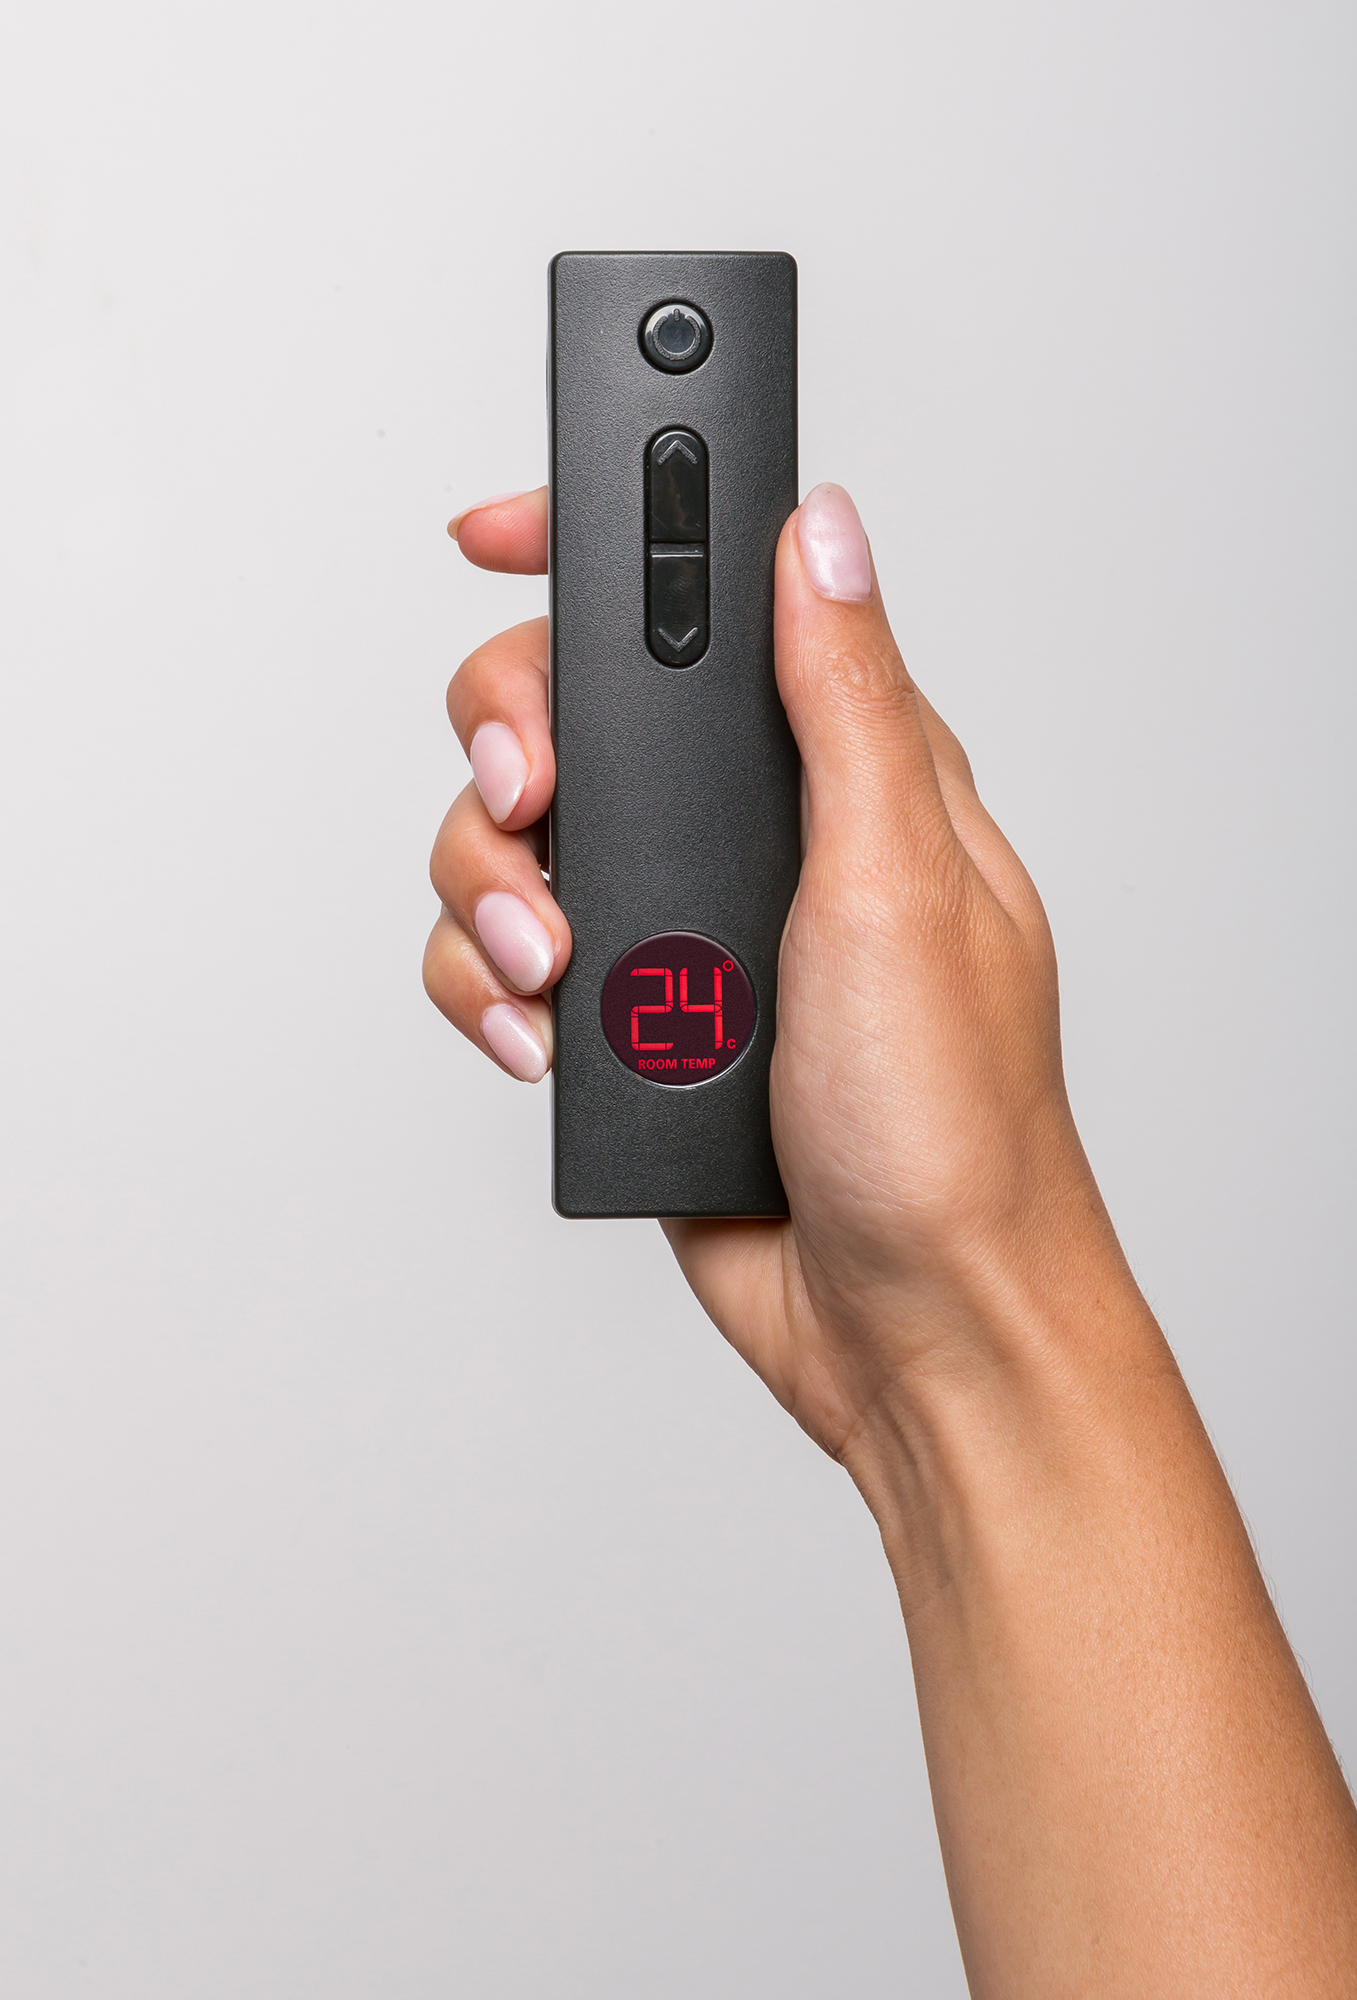 universal controller in someones hand